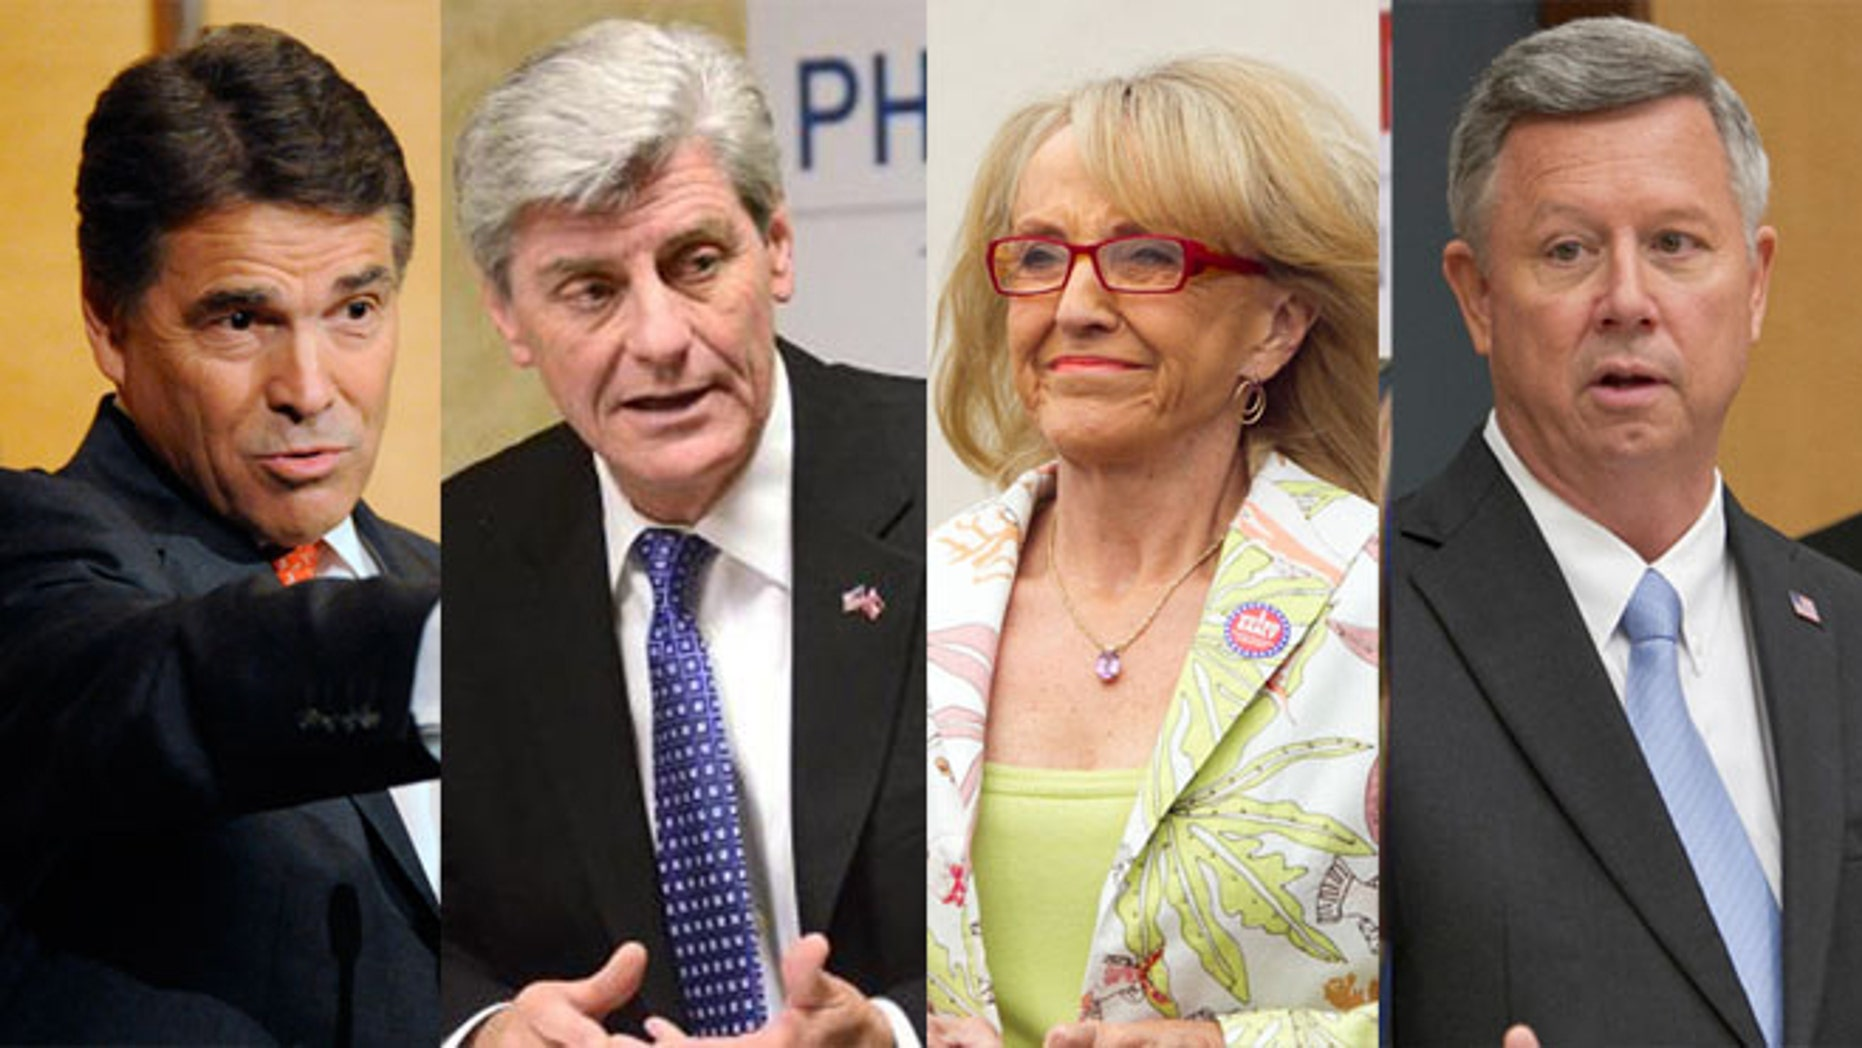 From left to right: Texas Governor Rick Perry, Mississippi Governor Phil Bryant, Arizona Governor Jan Brewer Nebraska Governor Dave Heineman. (AP images)